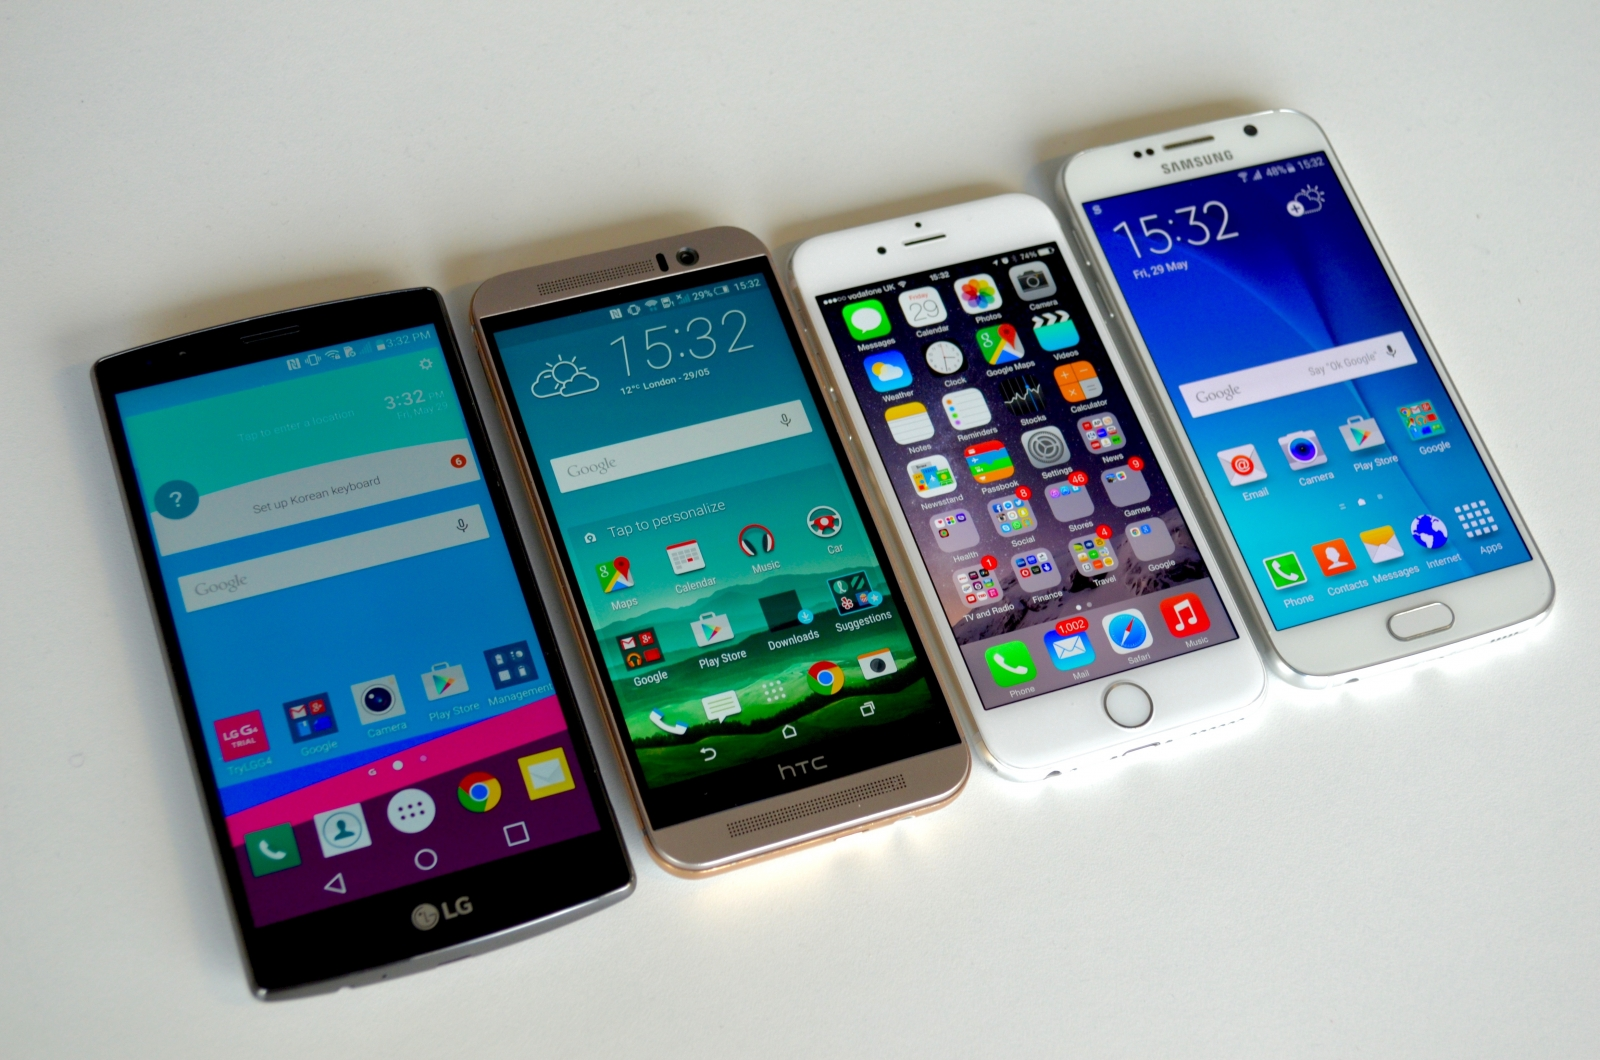 Best smartphone of 2015 so far: iPhone 6 vs Samsung Galaxy ...